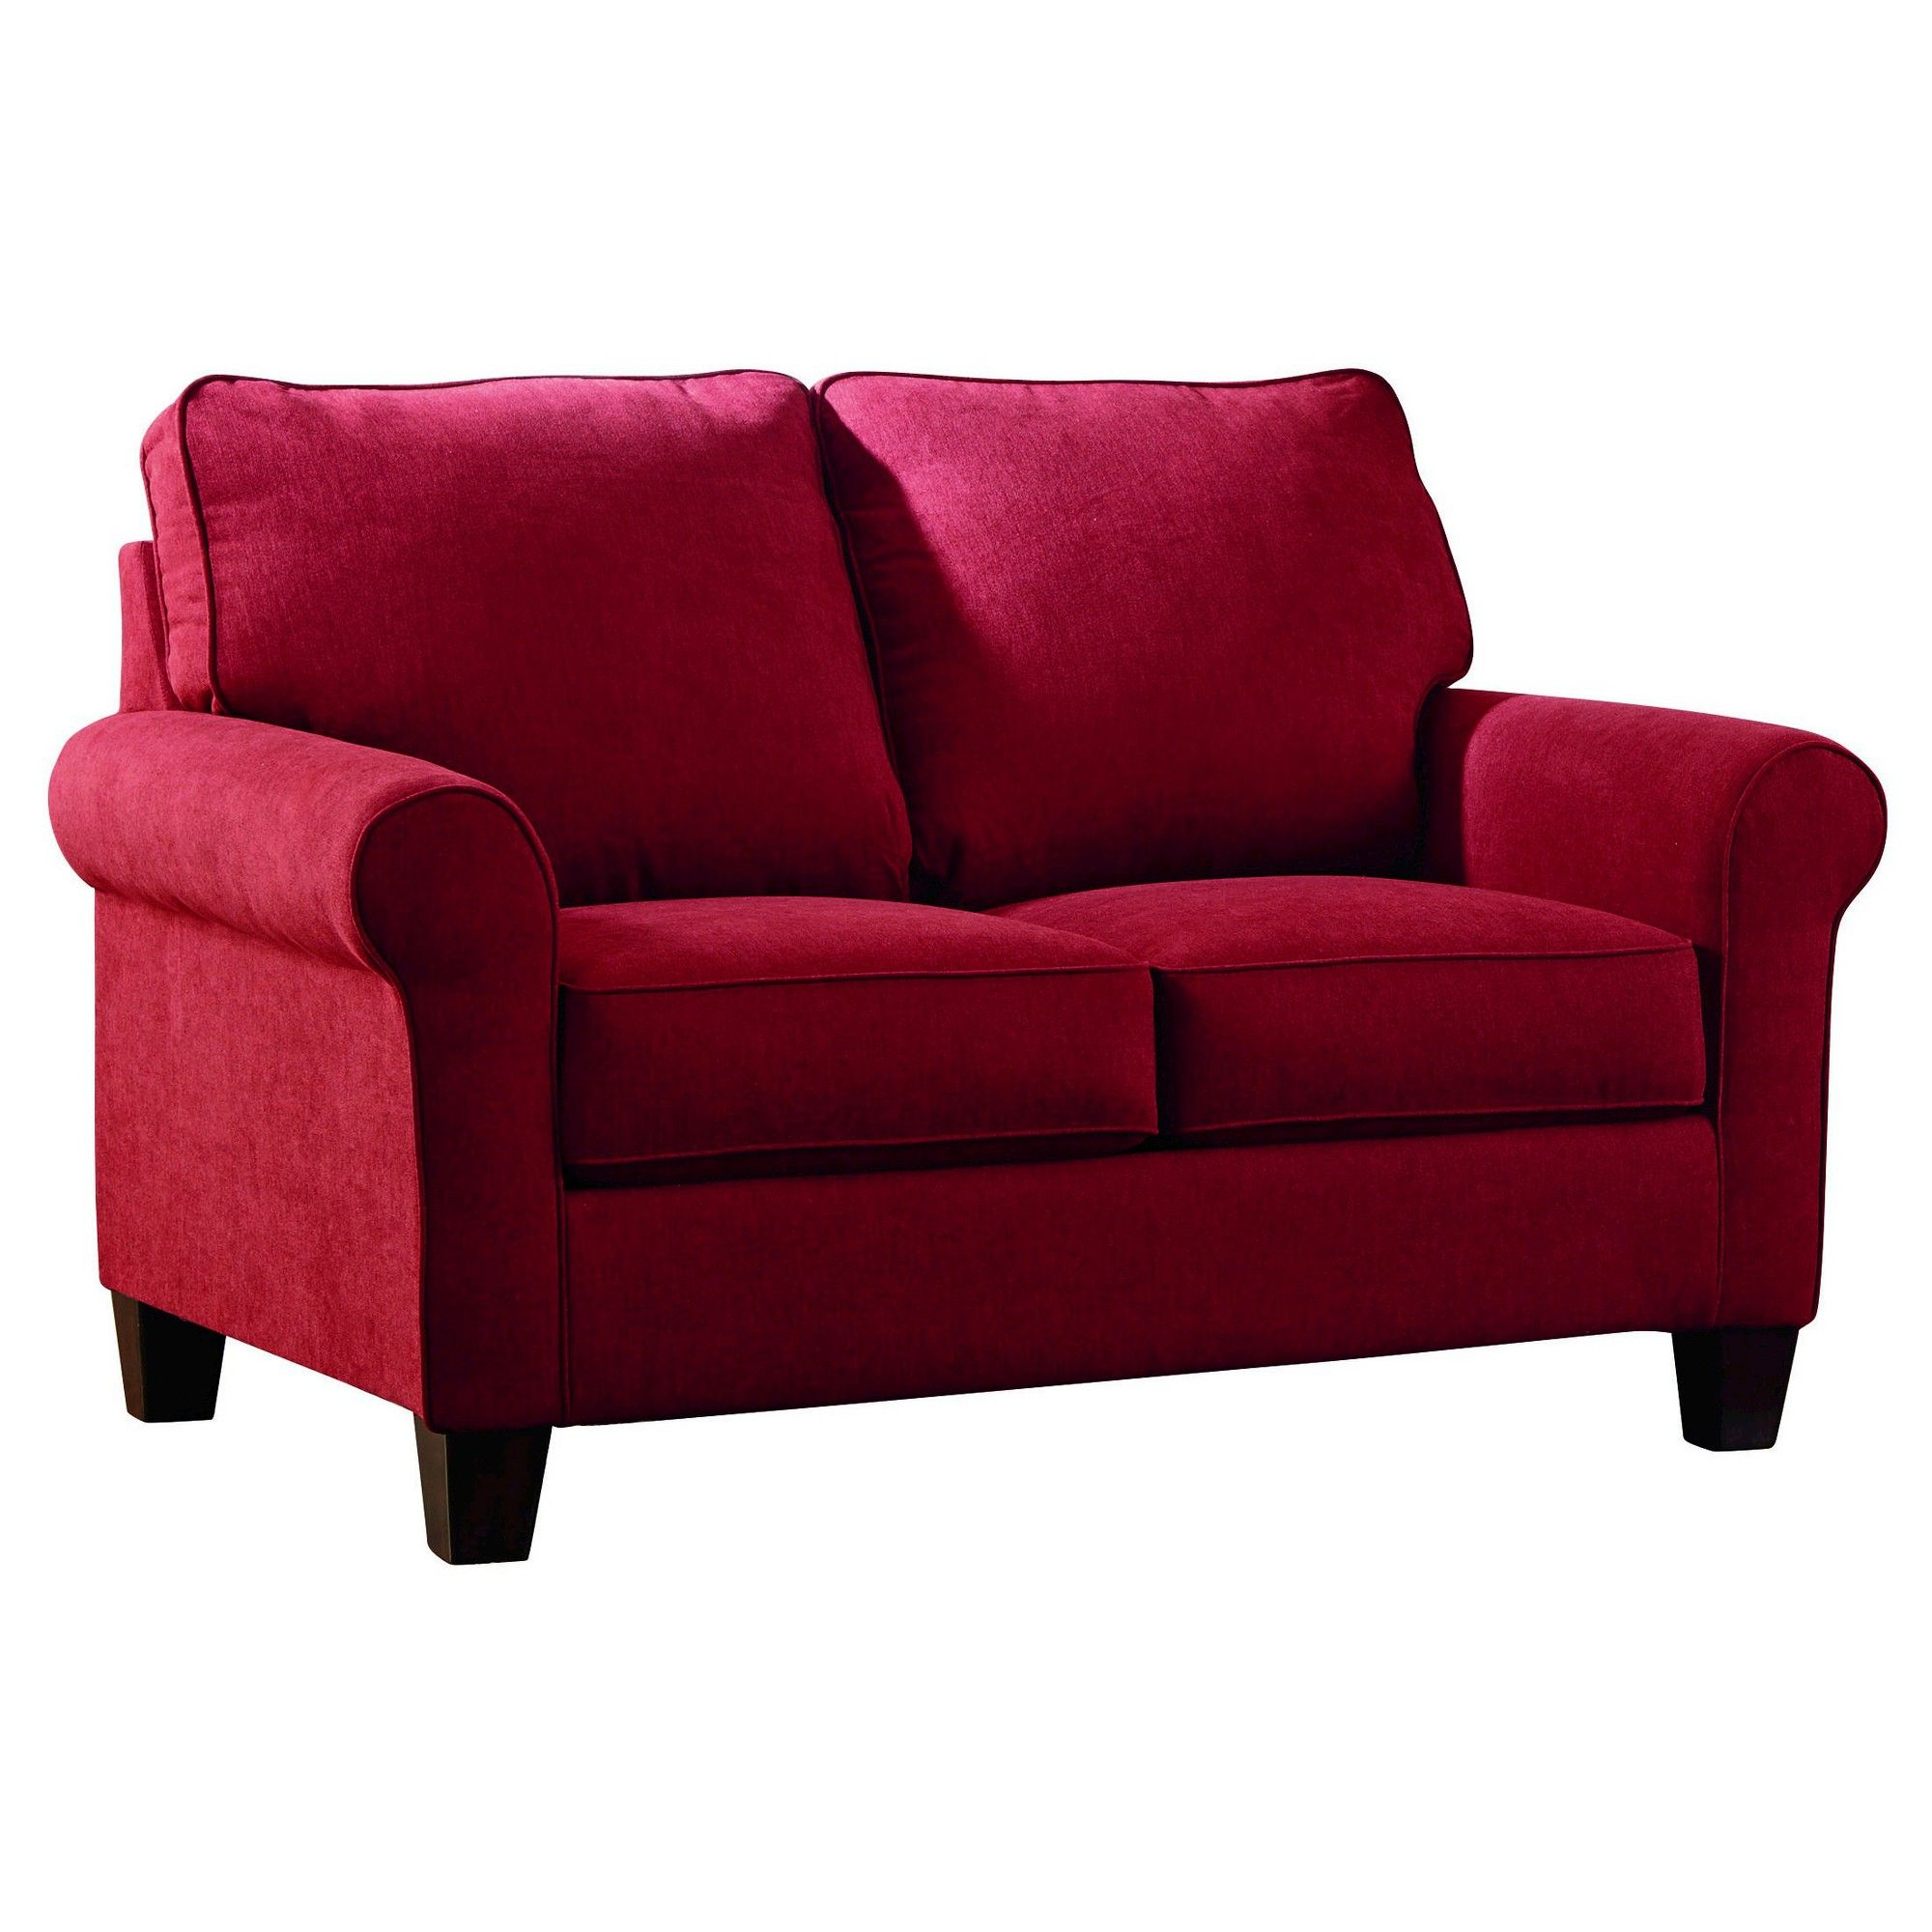 Zeth Twin Sofa Sleeper Crimson (Red) Signature Design